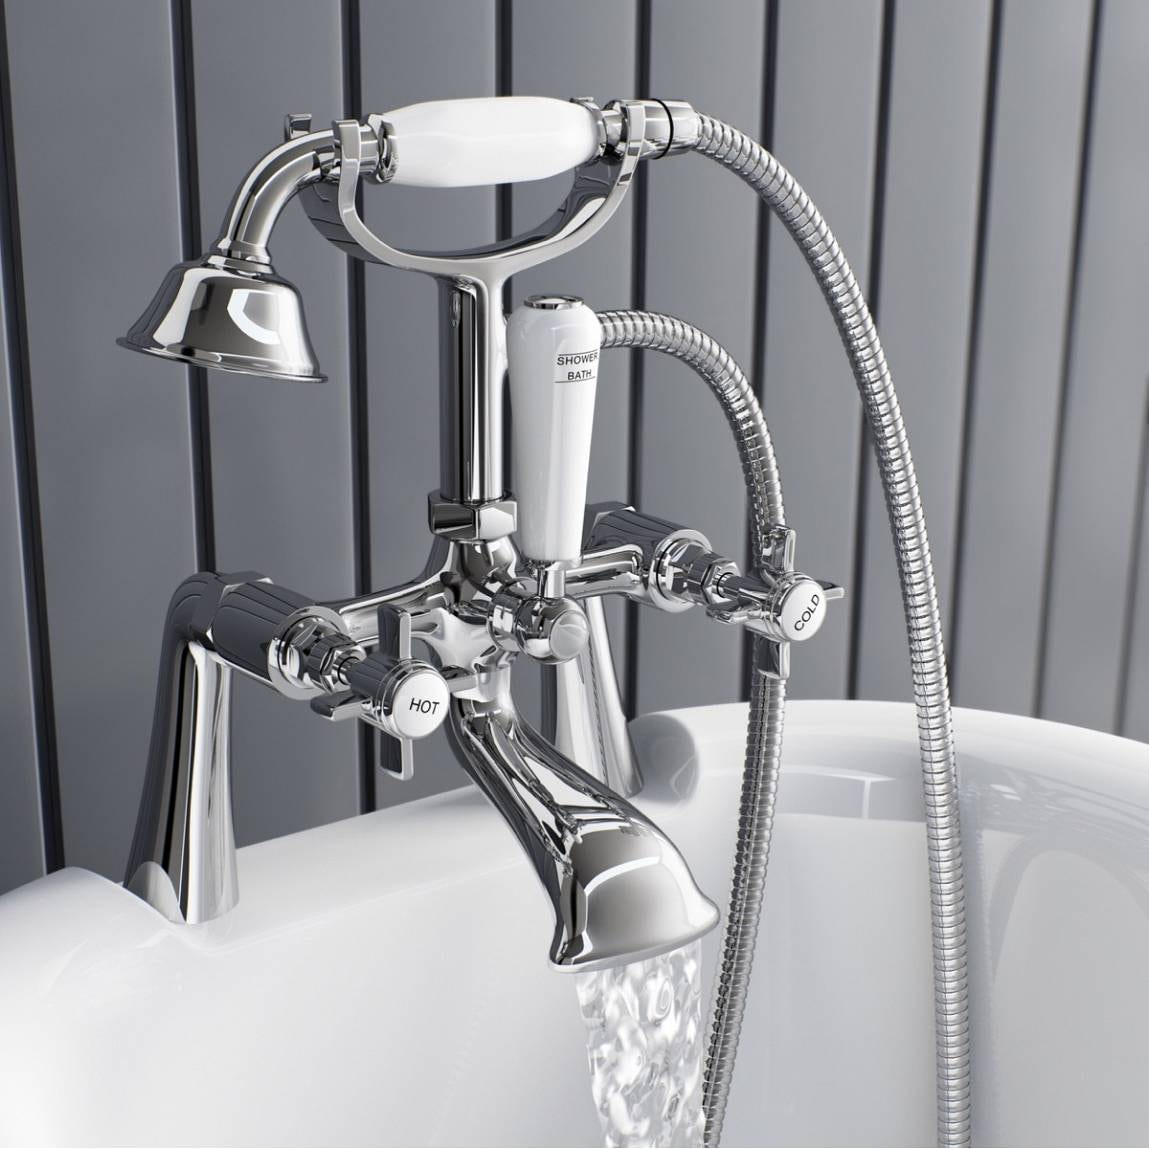 hampshire bath shower mixer tap victoriaplum com thermostatic bath shower mixer tap from taps uk